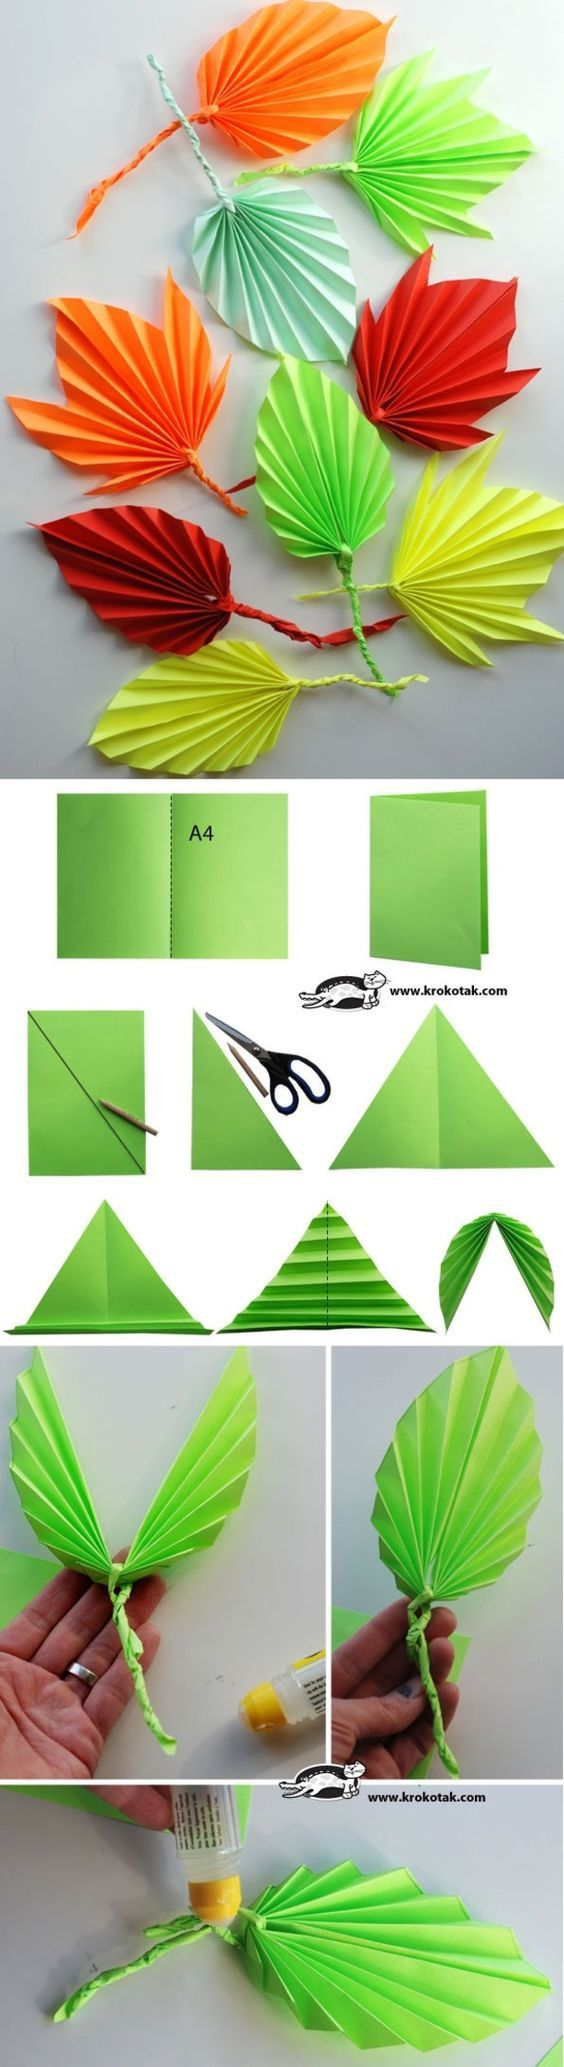 1.fold paper in half draw diagonal 2. cut along diagonal...use 2 loose triangles to twist into vine 3. open symmetrical triangle and fold 4. leave if folded, twist paper vine or pipecleaner into middle 5. open and tape: